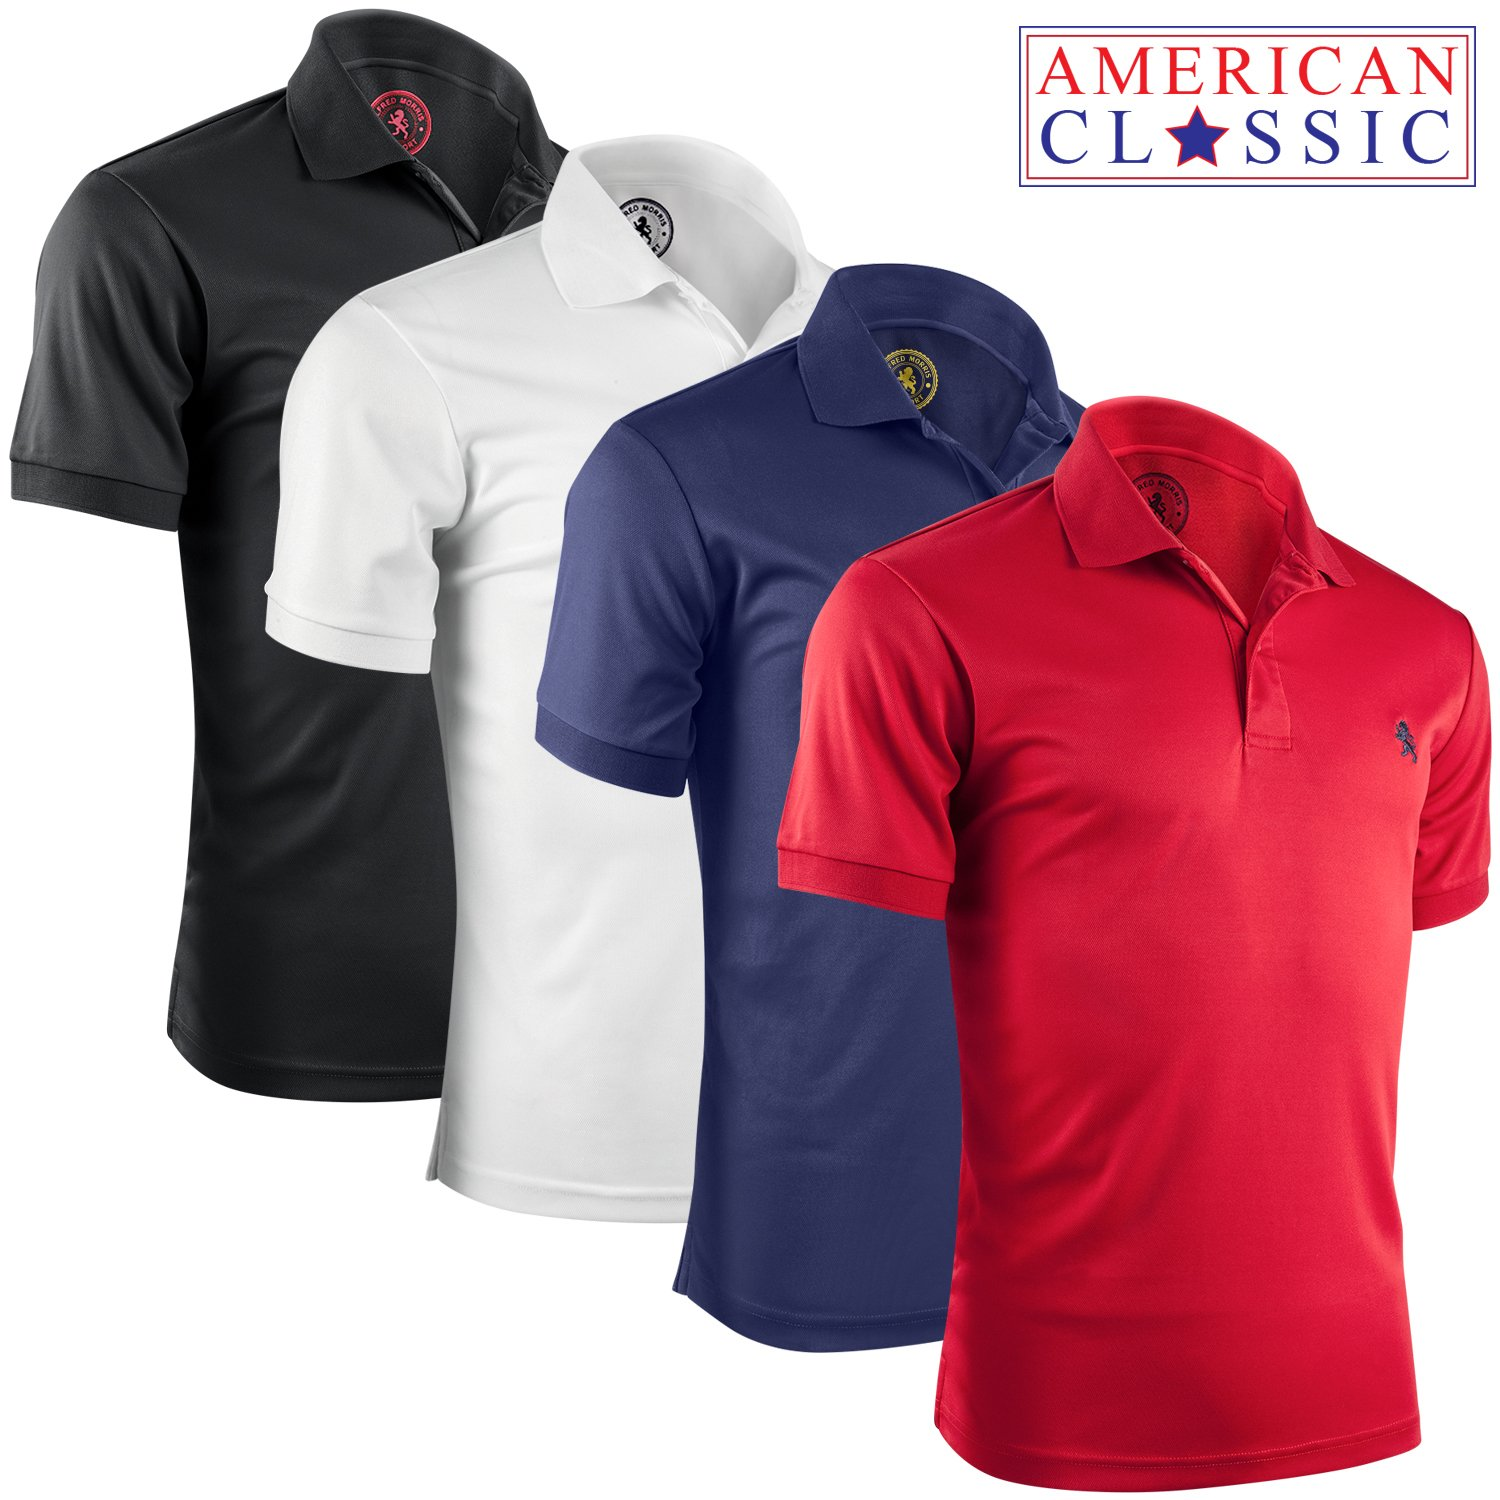 74ba09a98 SUPERIOR FITTING – Albert Morris traditional solid polo shirts for men are  sized professionally for a perfect, comfortable fit. Great for going out,  ...